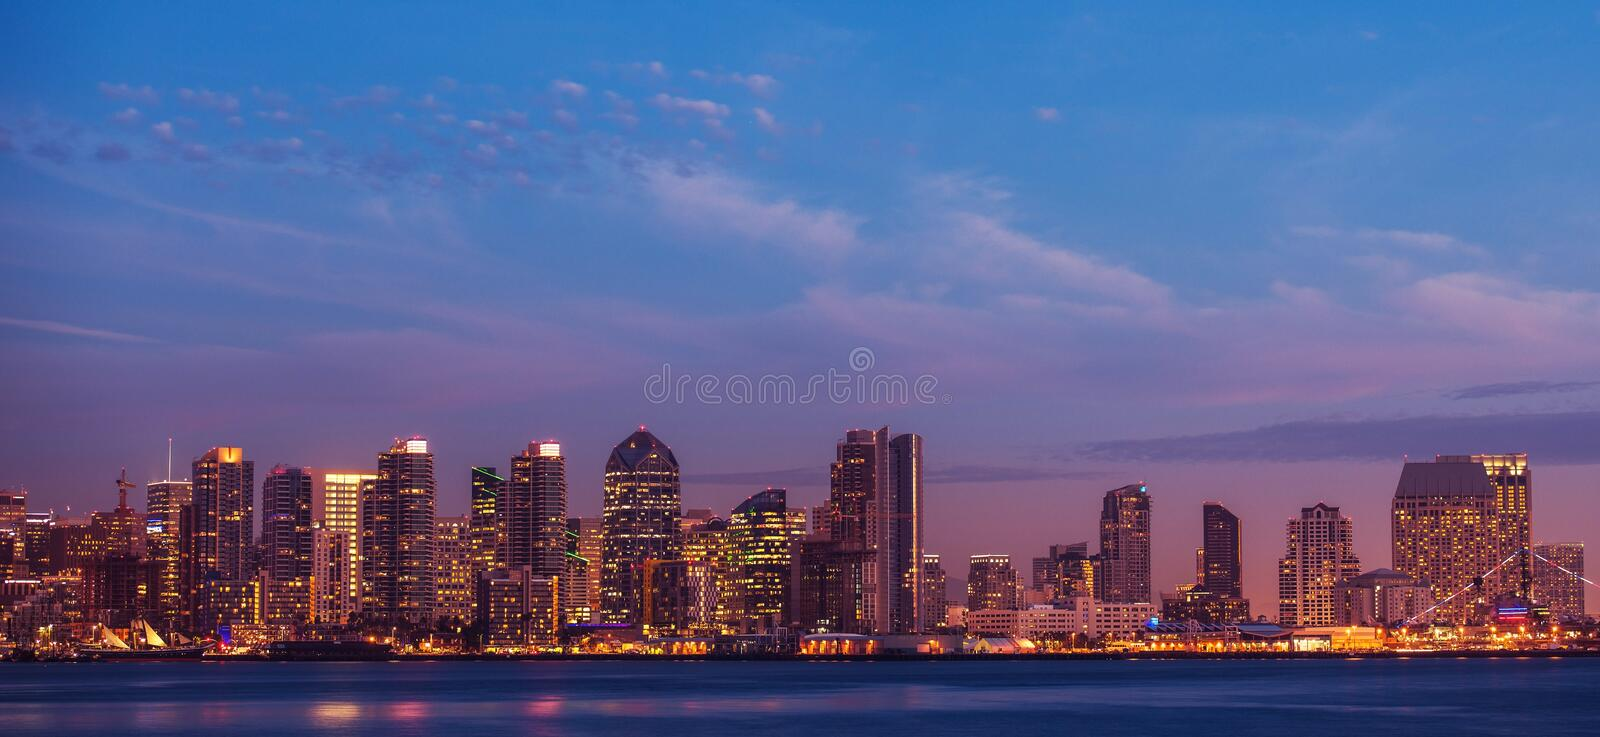 City of San Diego California stock photography